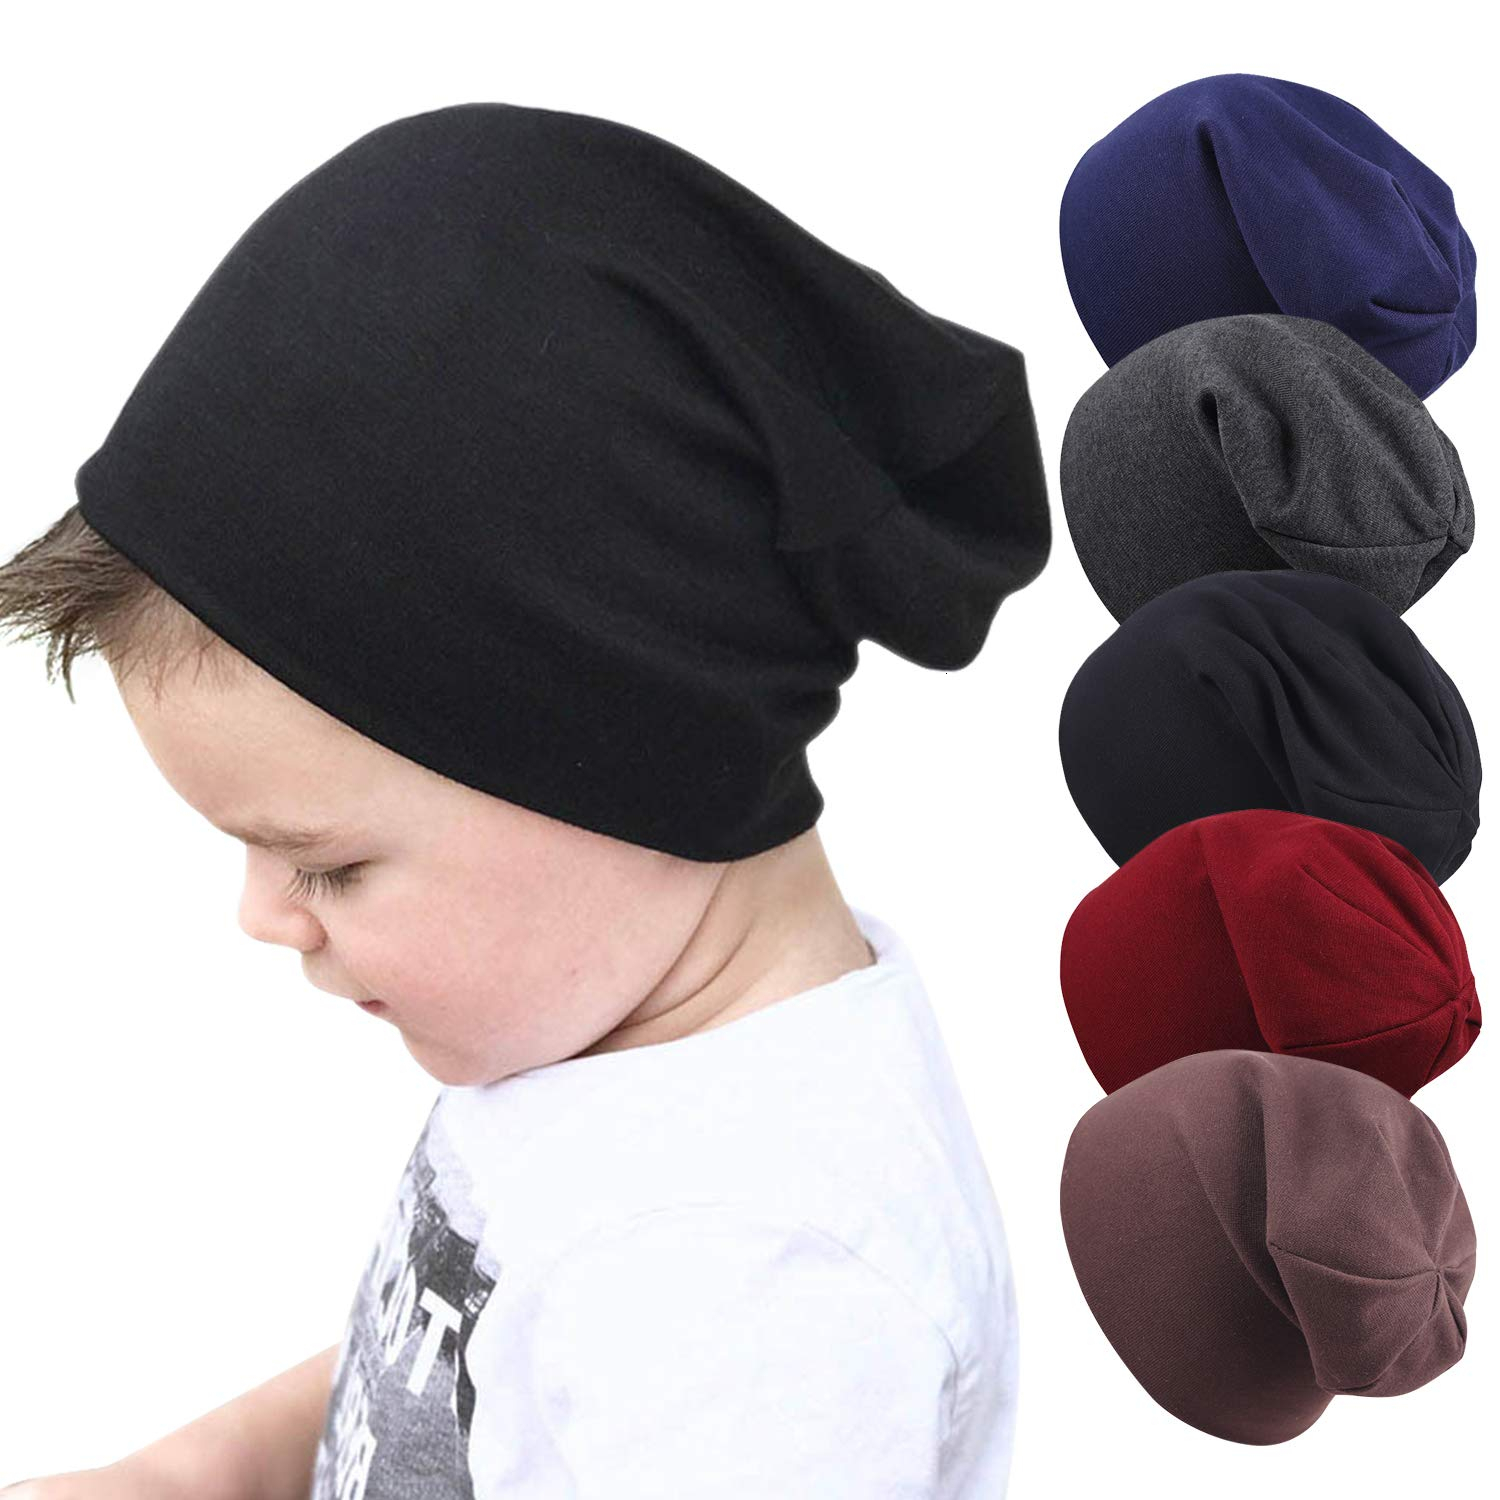 Xpeople Baby Beanie Kids Hat Newborn Toddler Girls Boys Cute Soft Unisex Cotton Lovely title=